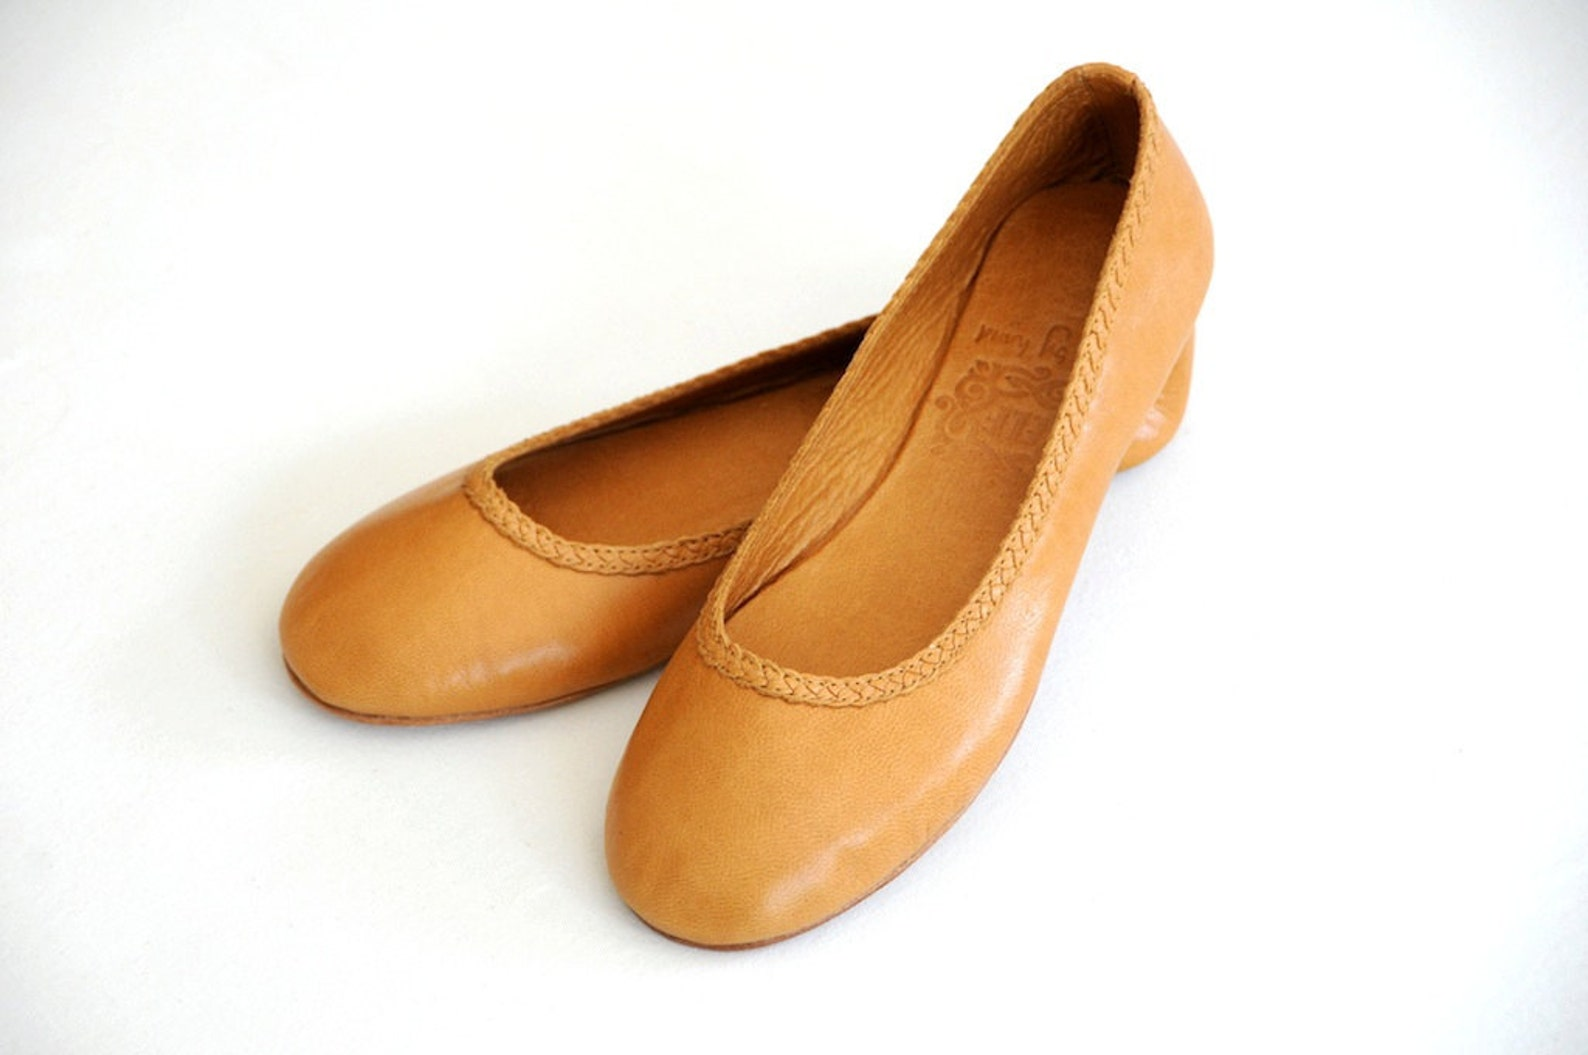 aisÉ. leather flat shoes / leather ballet flats / bridal / womens shoes flats. sizes: us 4-13. available in different leather co